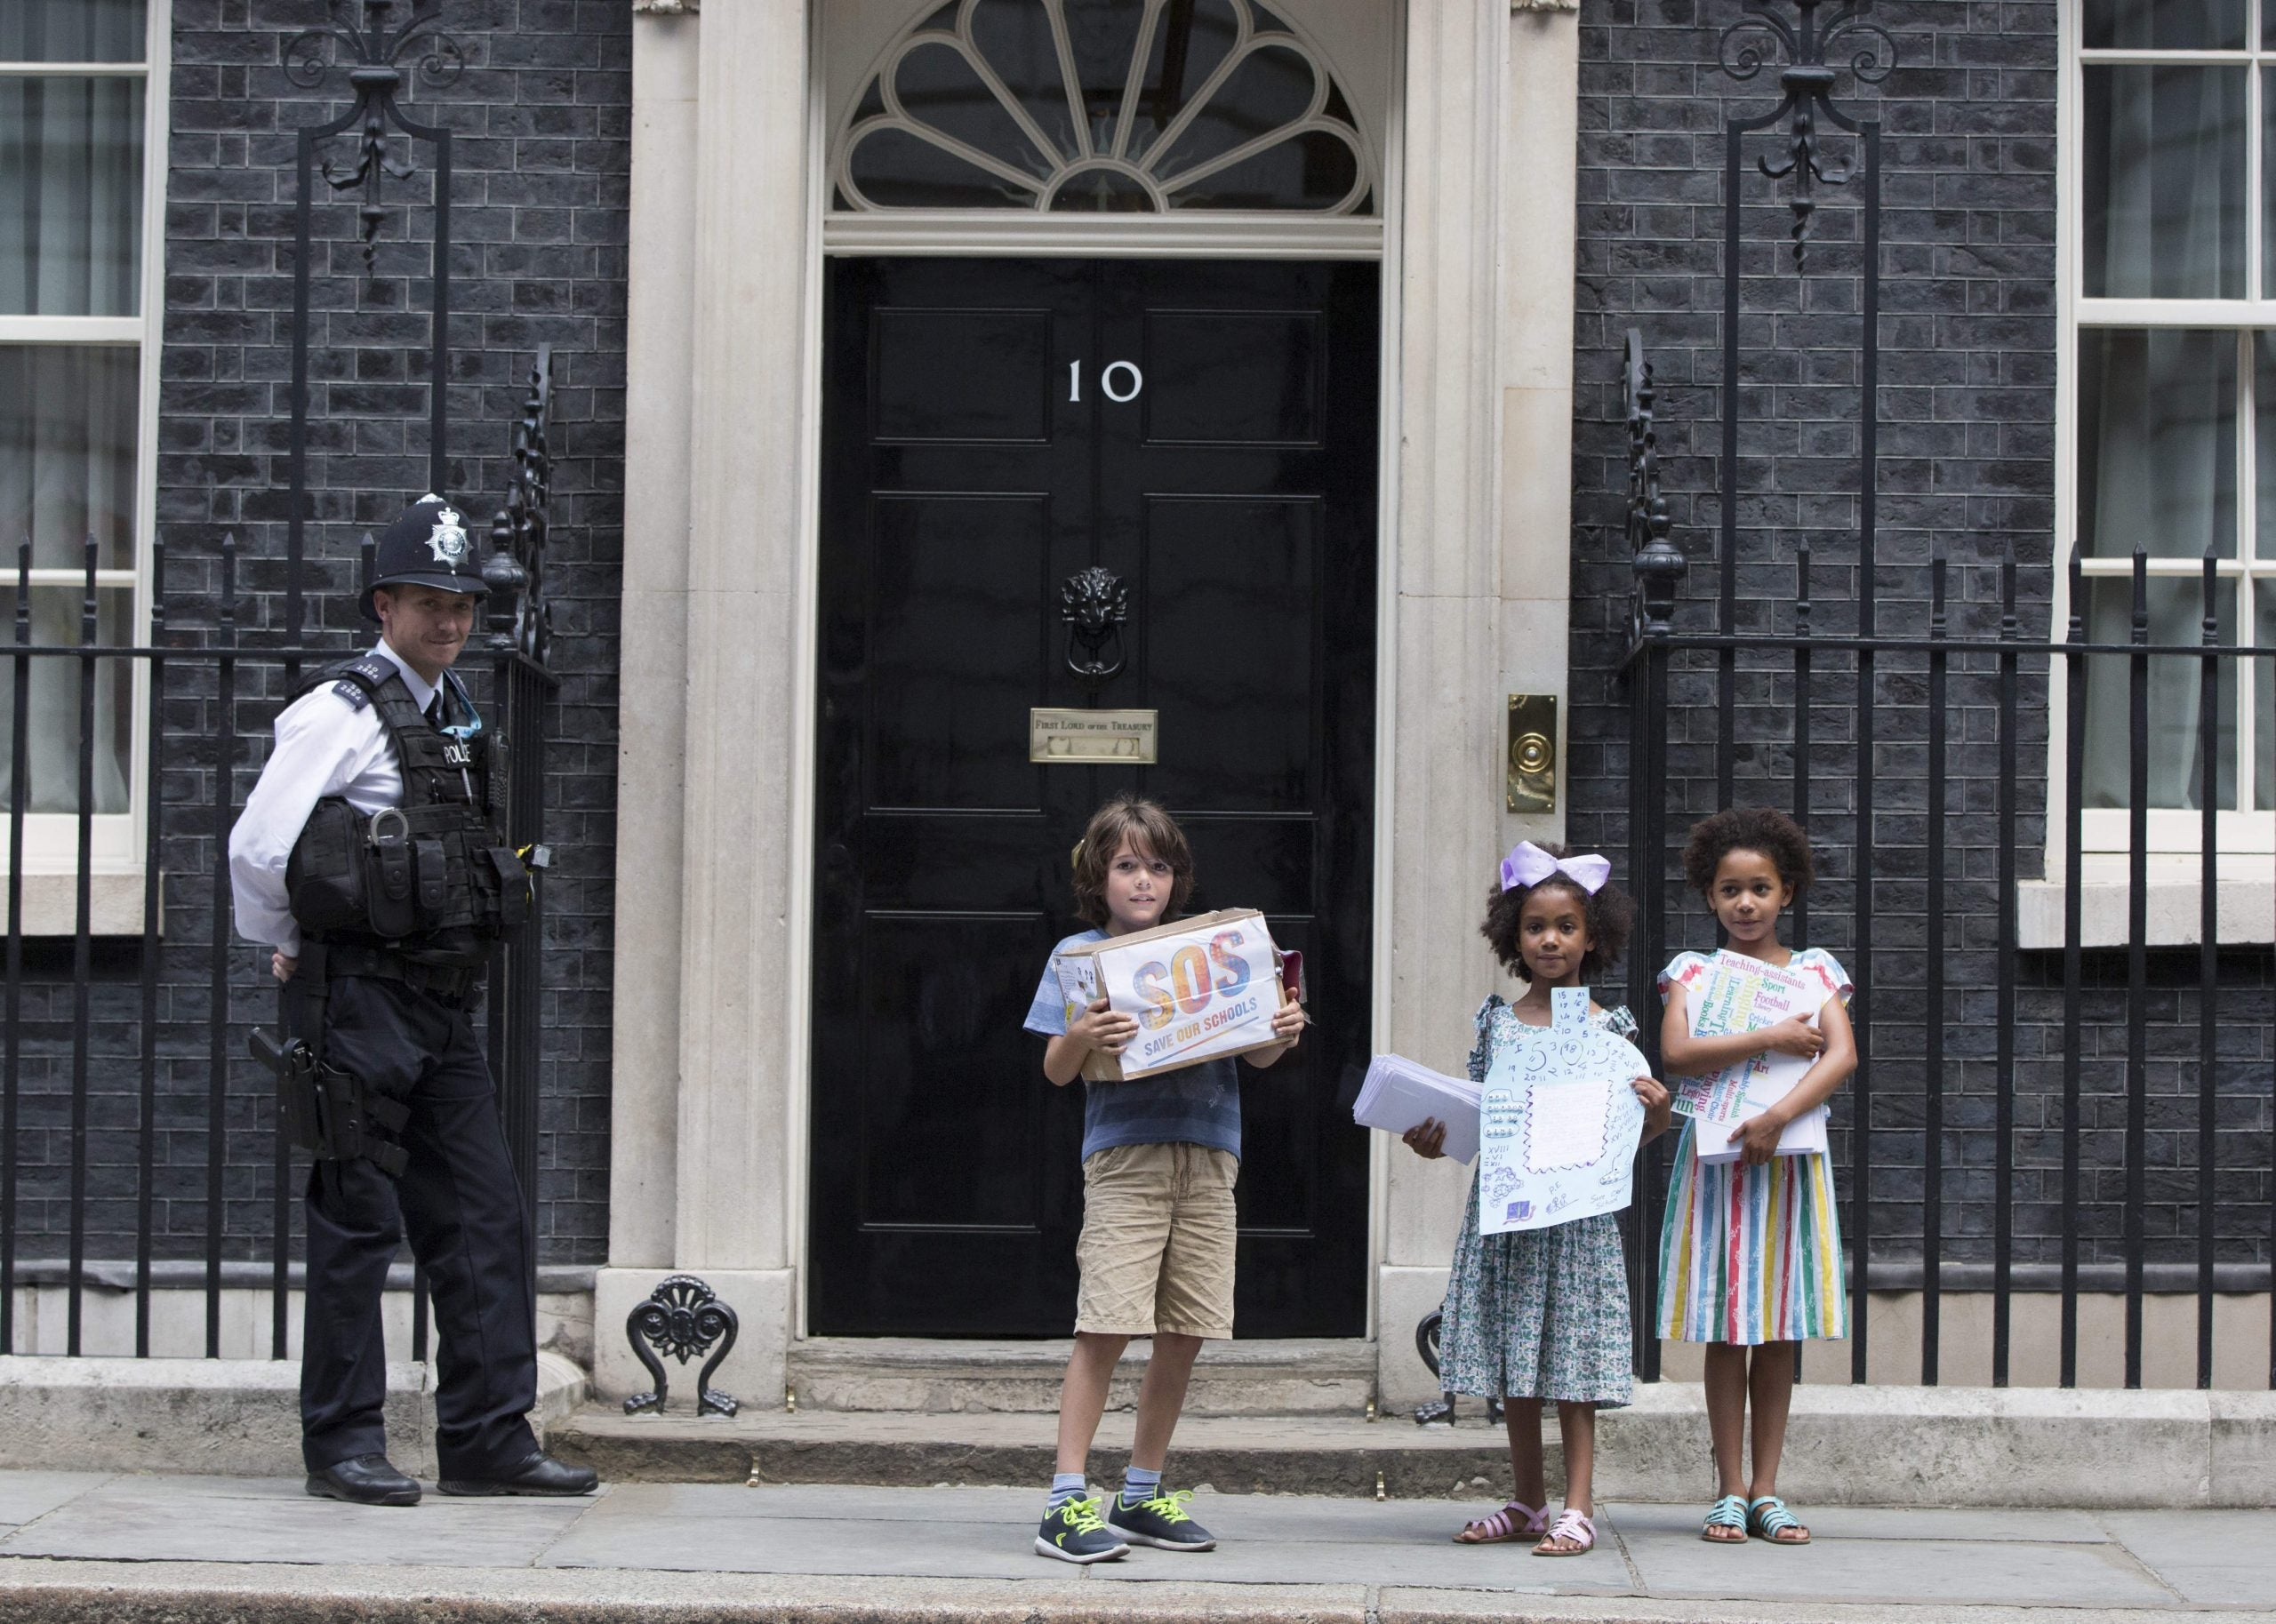 The extra money for schools is too little, far too late – they are already on their knees